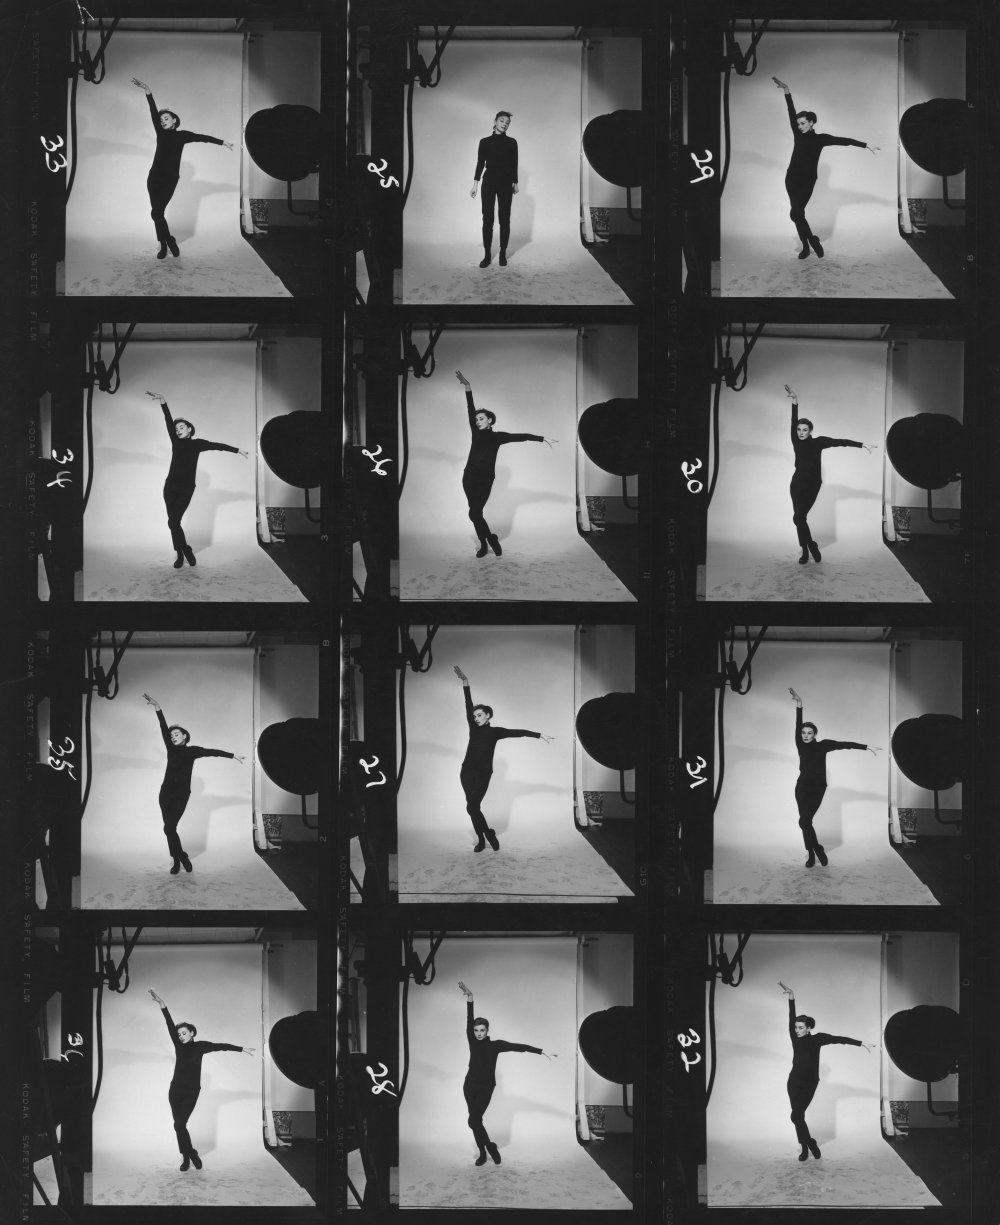 Contact print showing Hepburn dancing. Hepburn plays a Greenwich Village bookshop clerk who is discovered by style photographer Dick Avery (Fred Astaire) and whisked off to Paris on a fashion shoot